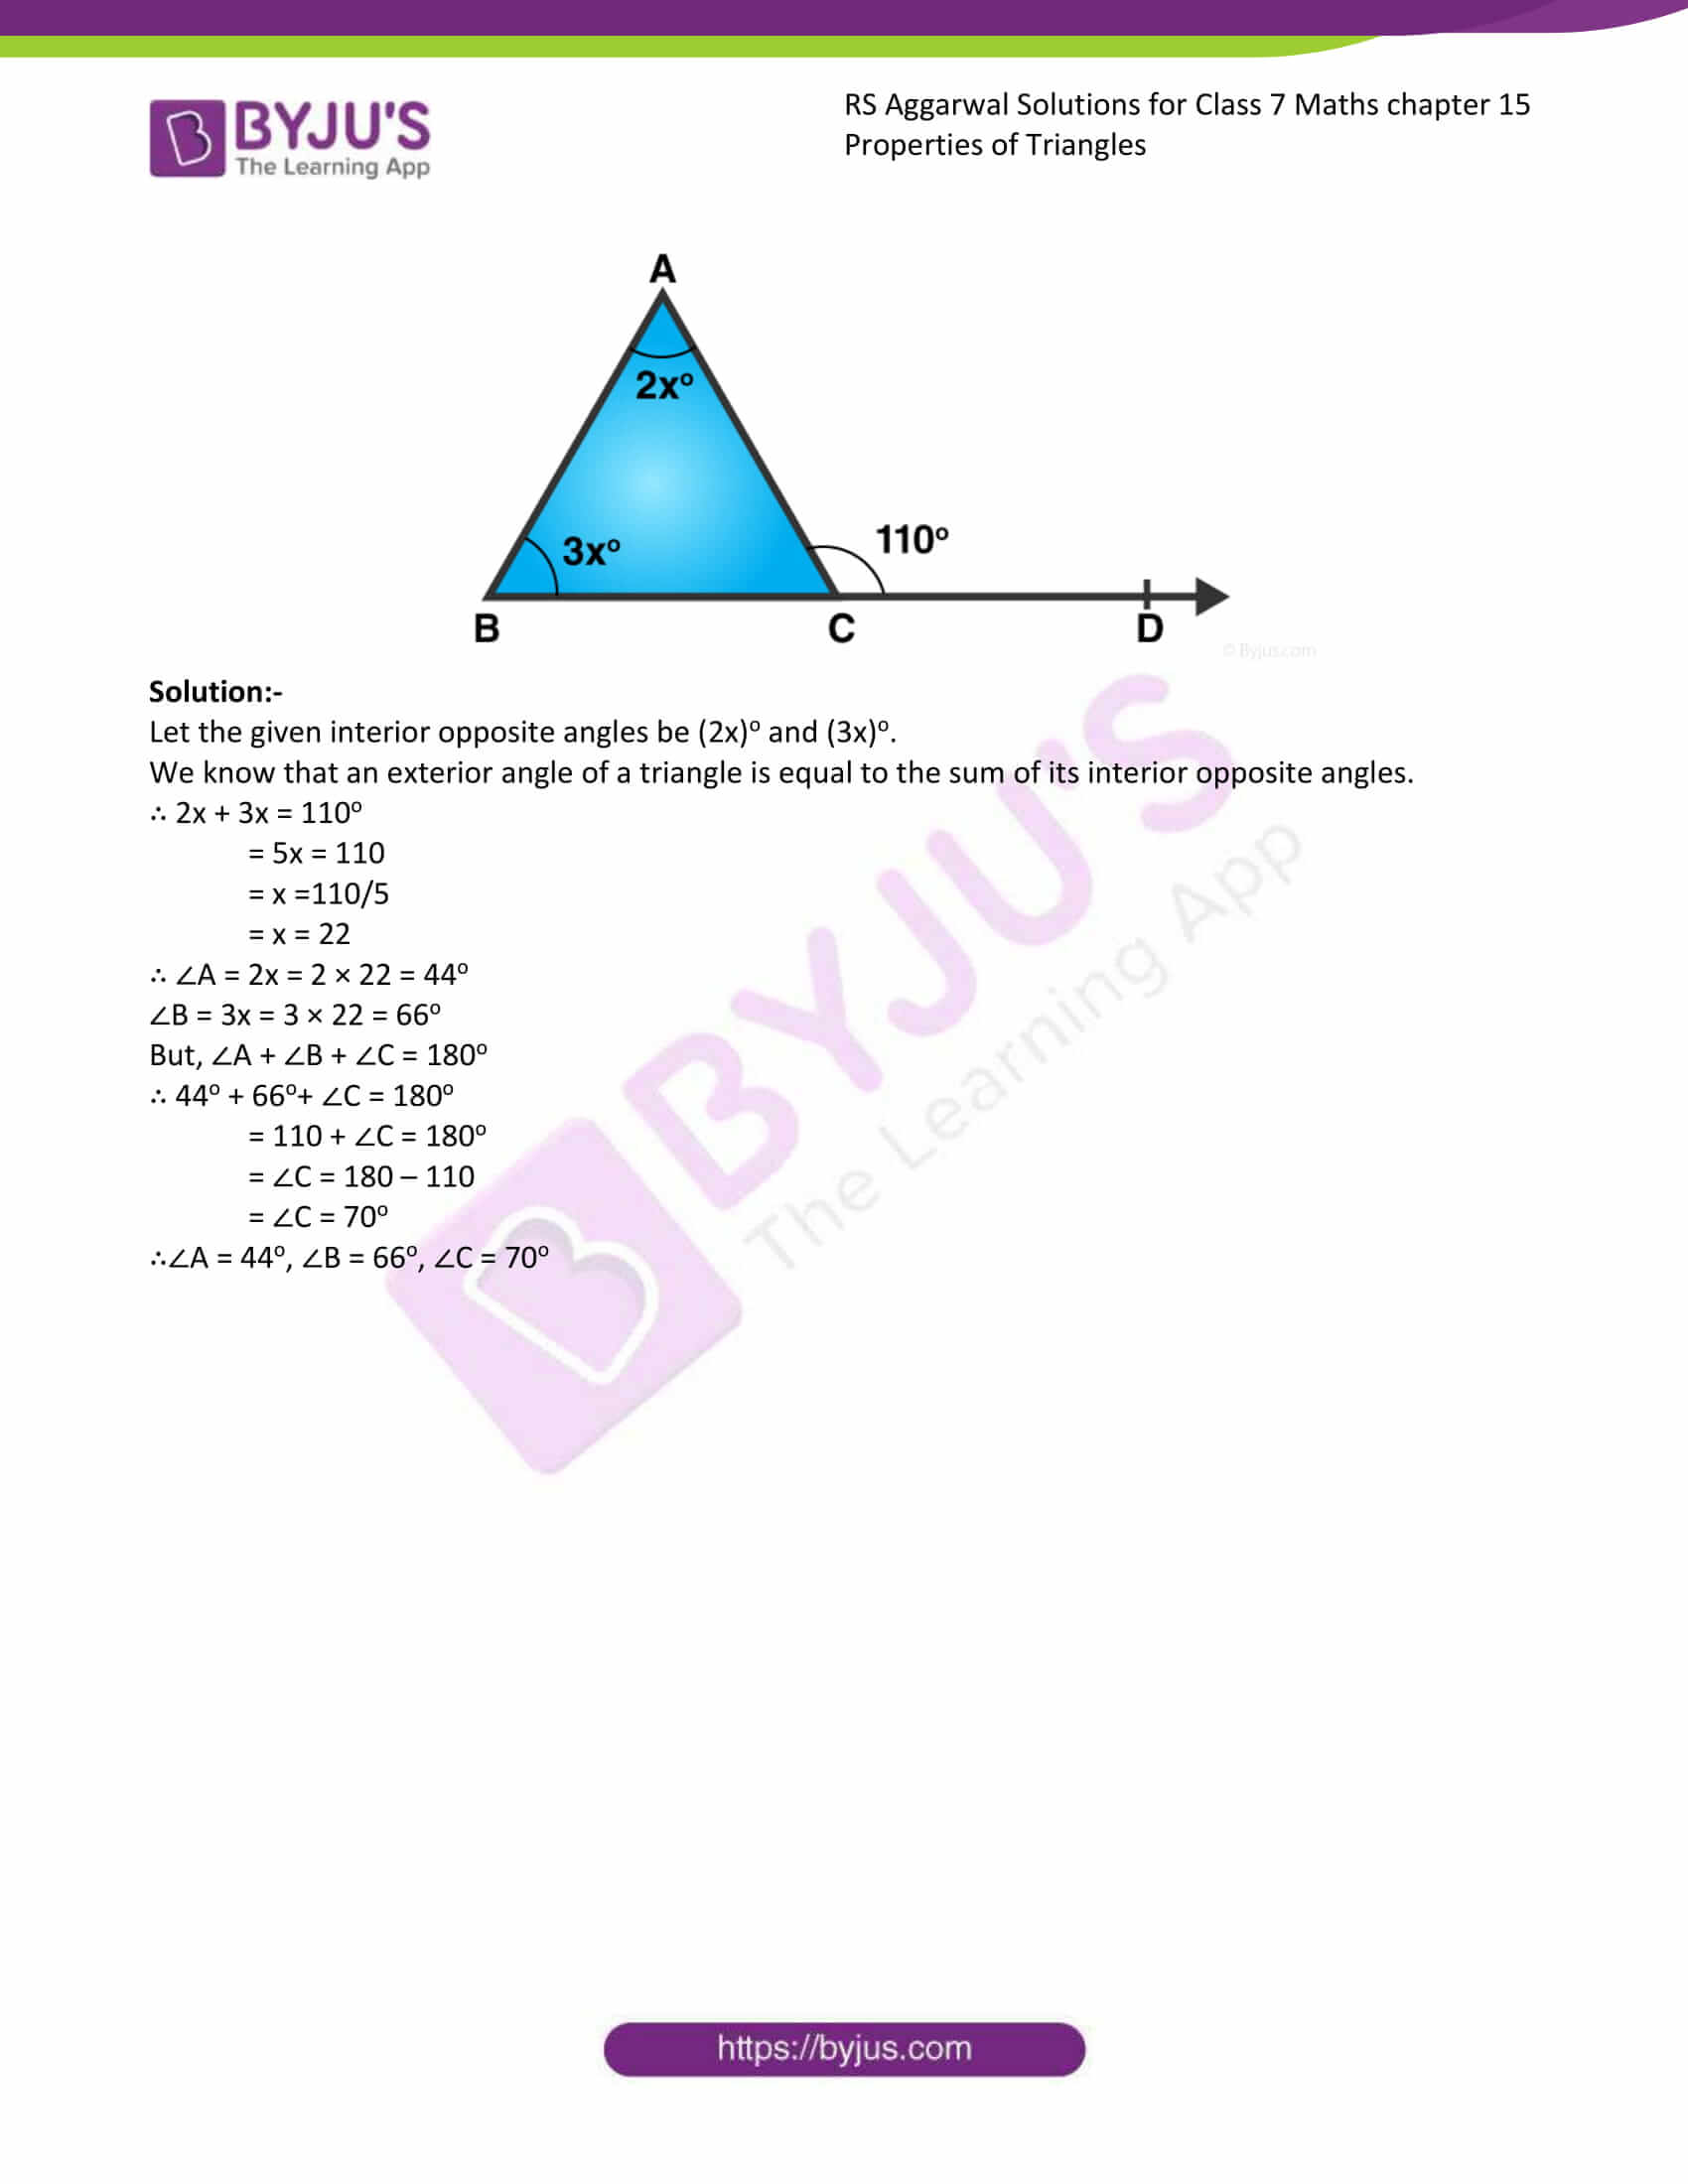 RS Aggarwal Solutions Class 7 Maths Chapter 15 Exercise 15B Free Solutions 06